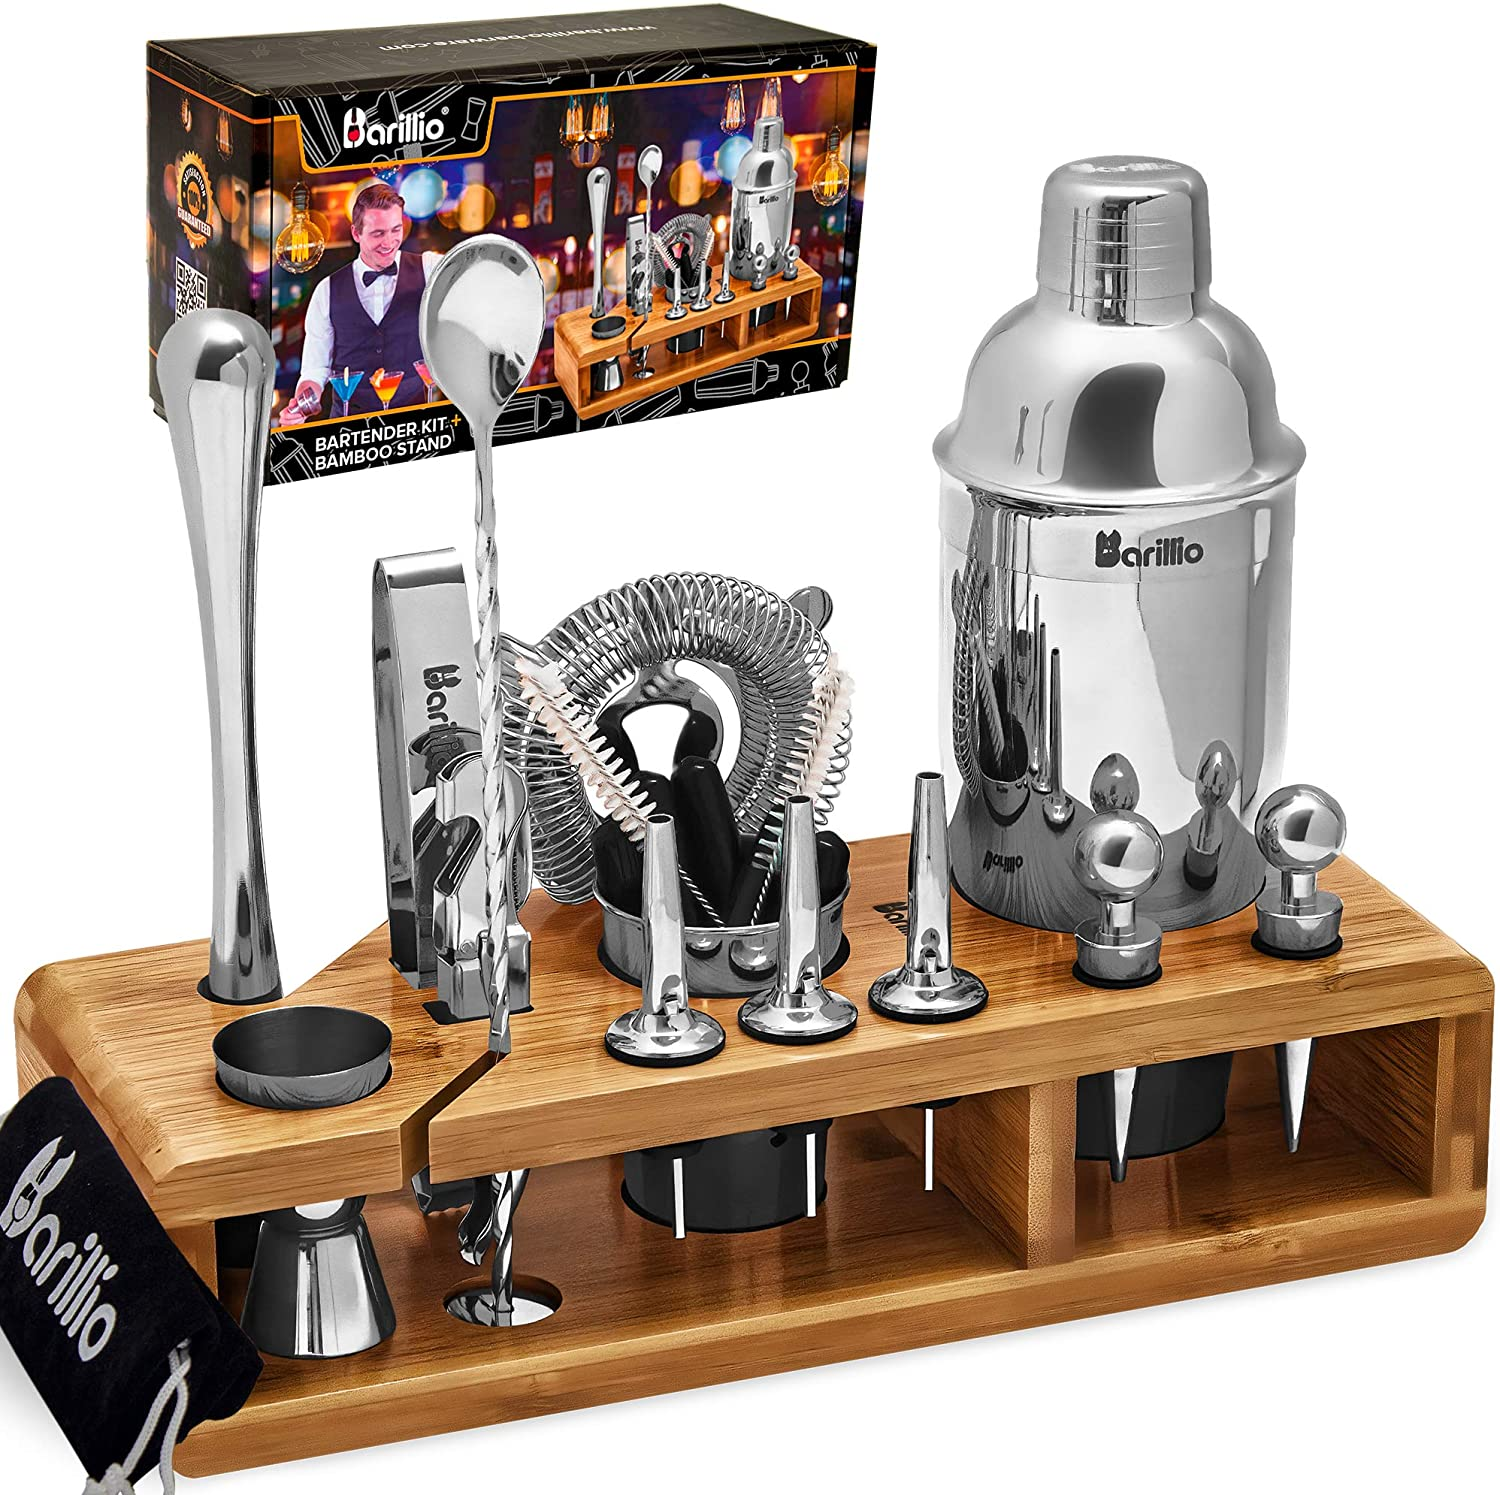 Barillio Elite Mixology Cocktail Bar Set With Bamboo Stand